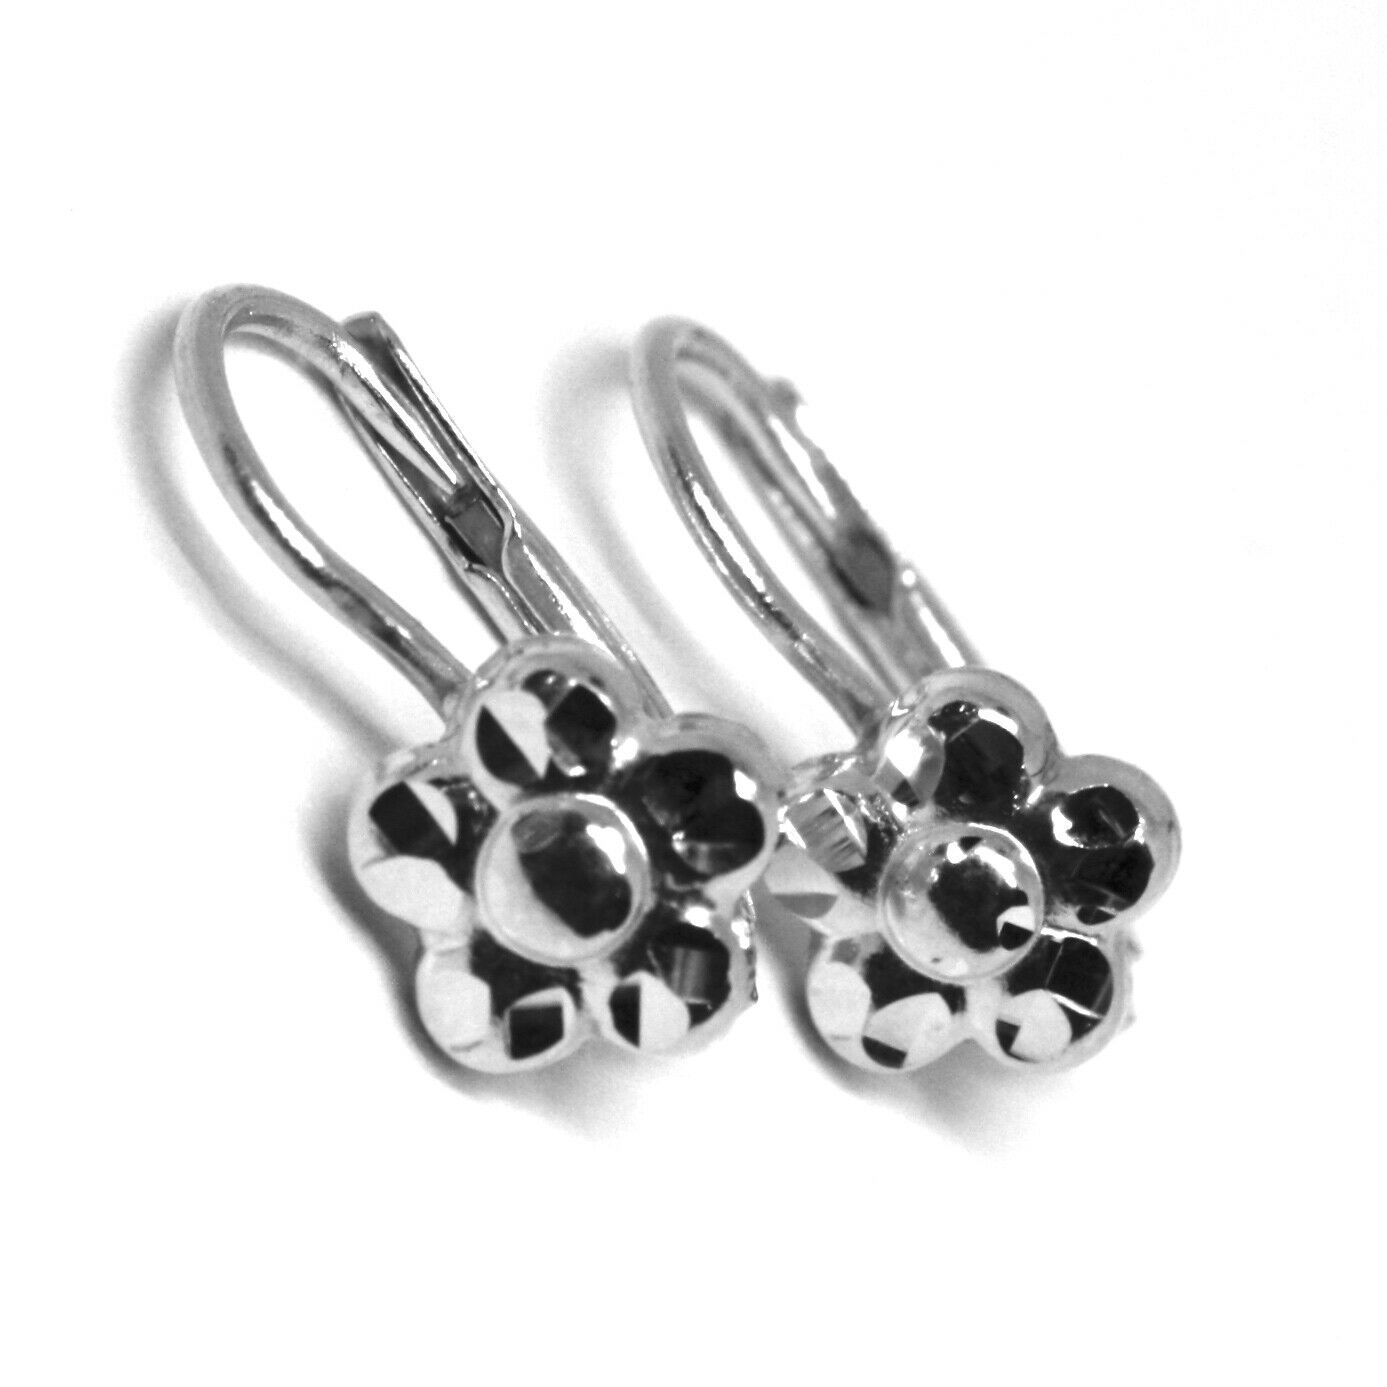 18K WHITE GOLD KIDS EARRINGS, FINELY HAMMERED FLOWER DAISY LEVERBACK CLOSURE